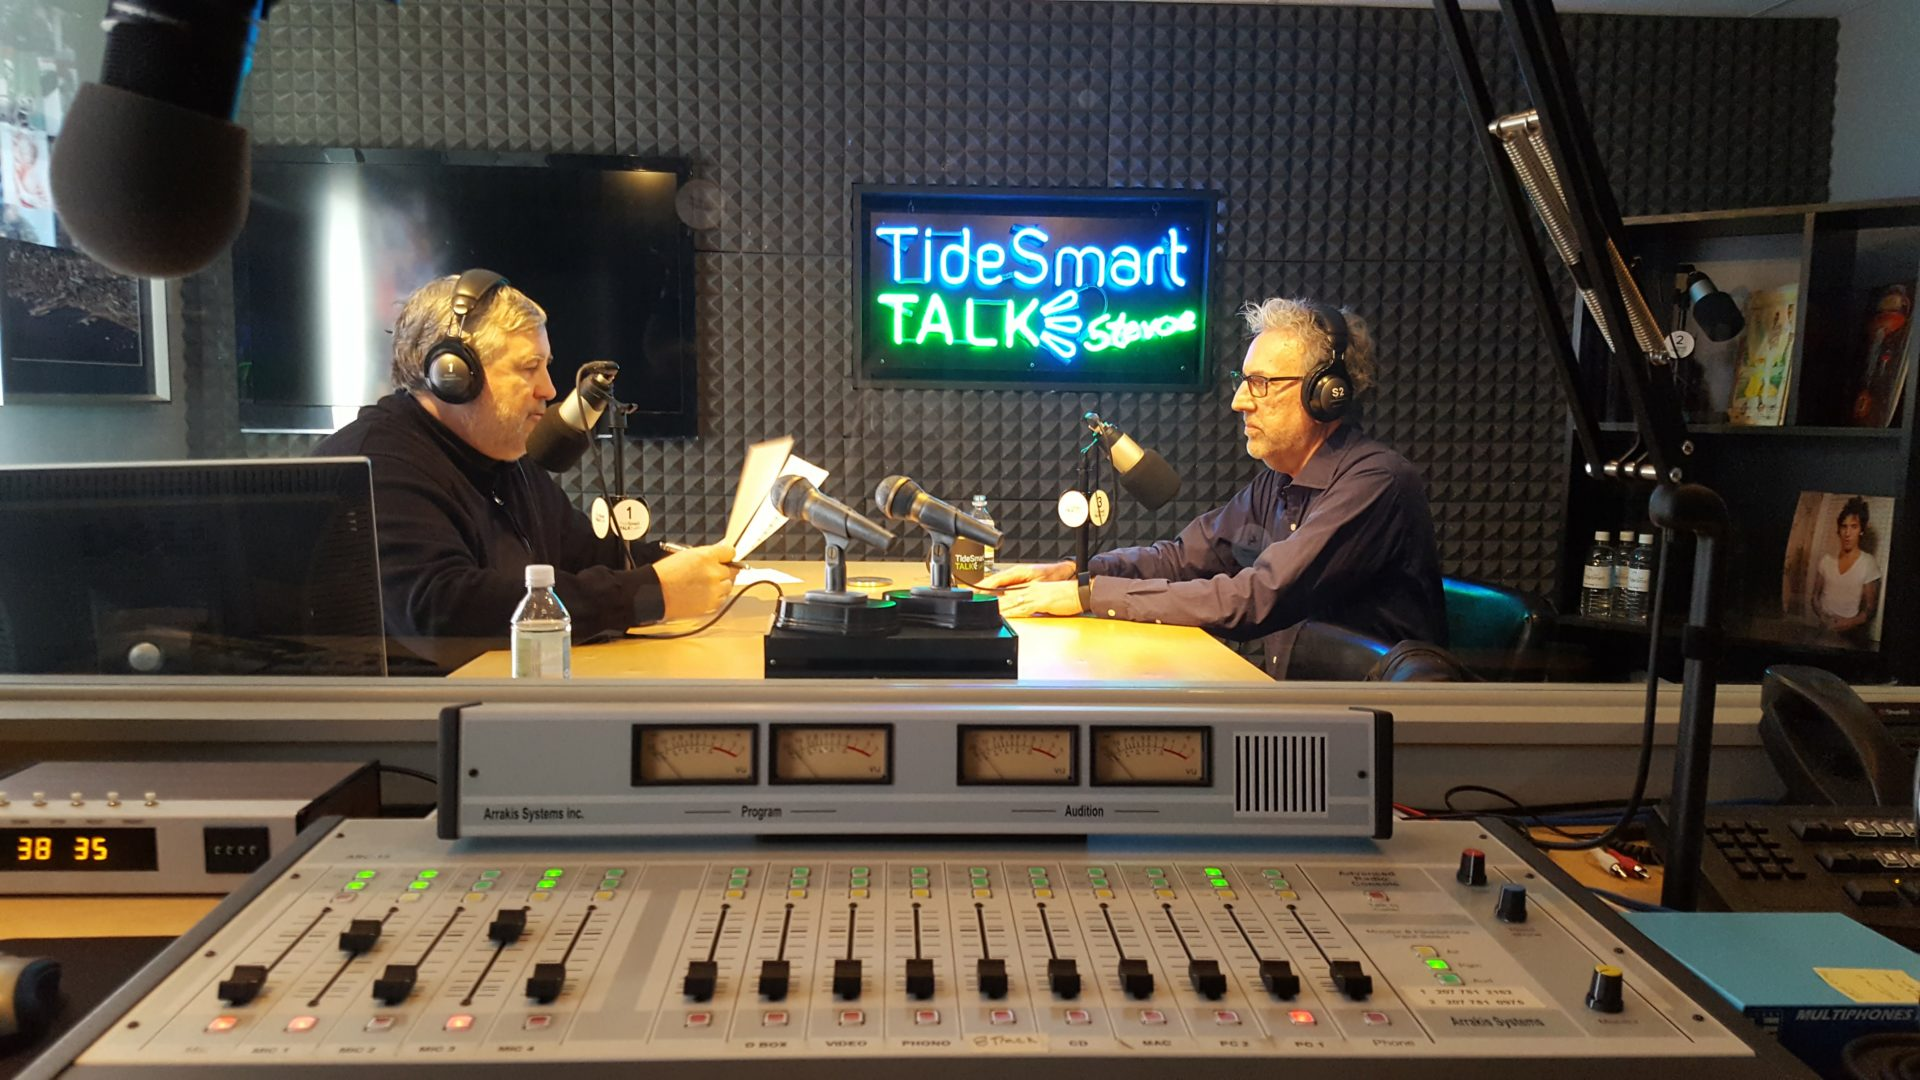 Host of TideSmart Talk with Stevoe, Steve Woods, welcomed Mo Mehlsak, Executive Editor of The Forecaster (at right).